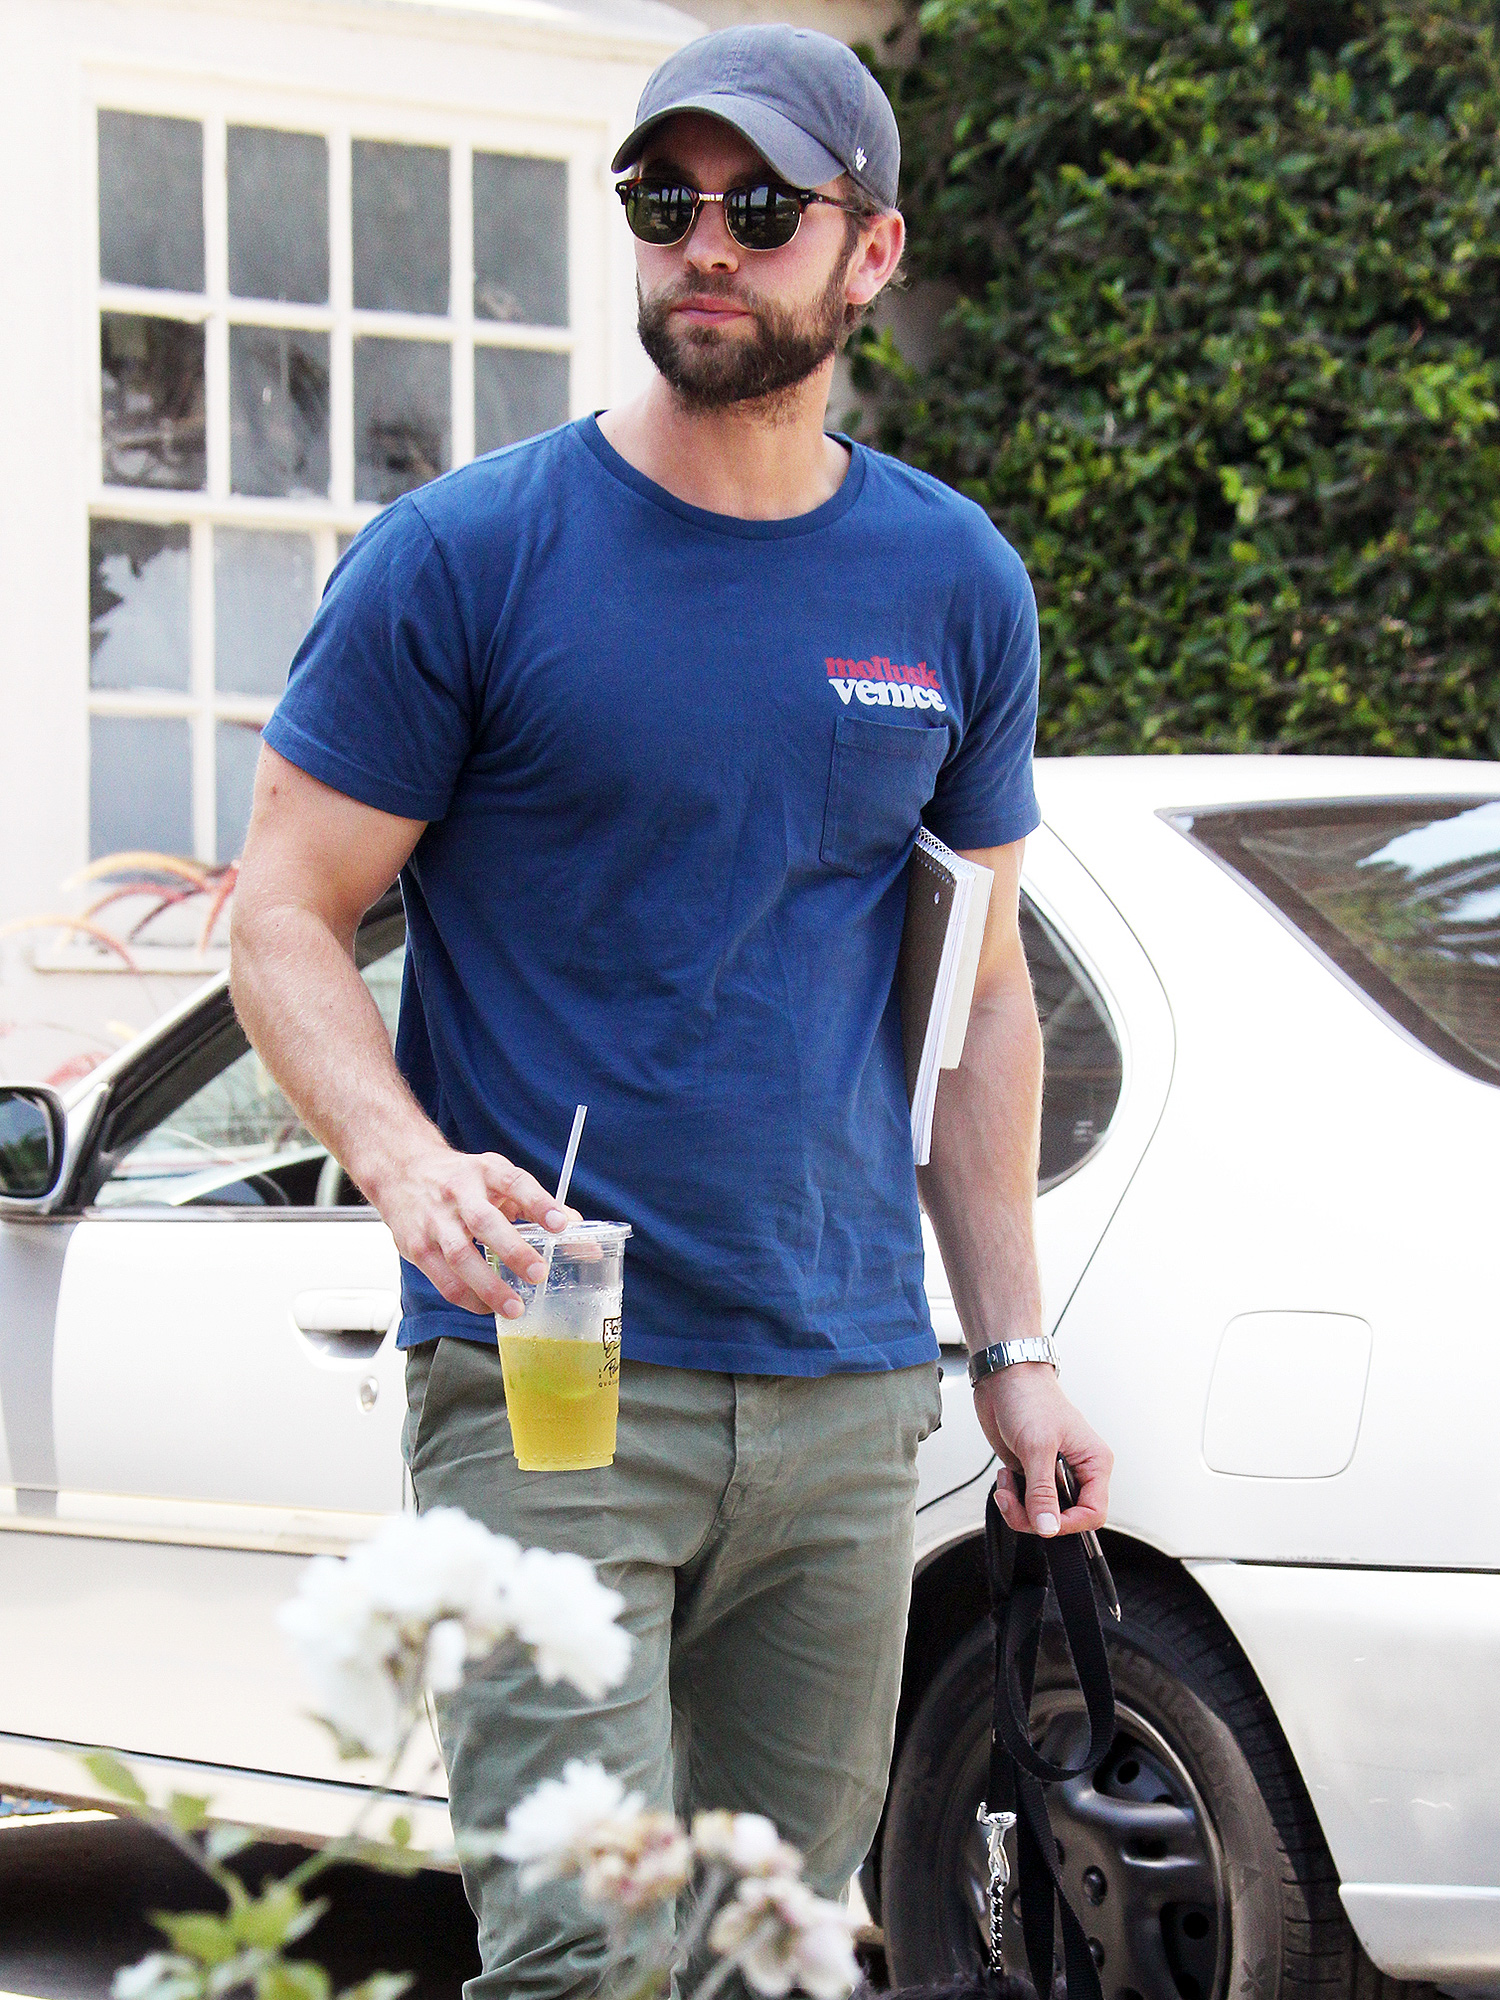 EXCLUSIVE: Chace Crawford spotted with his dog having an iced tea in L.A.